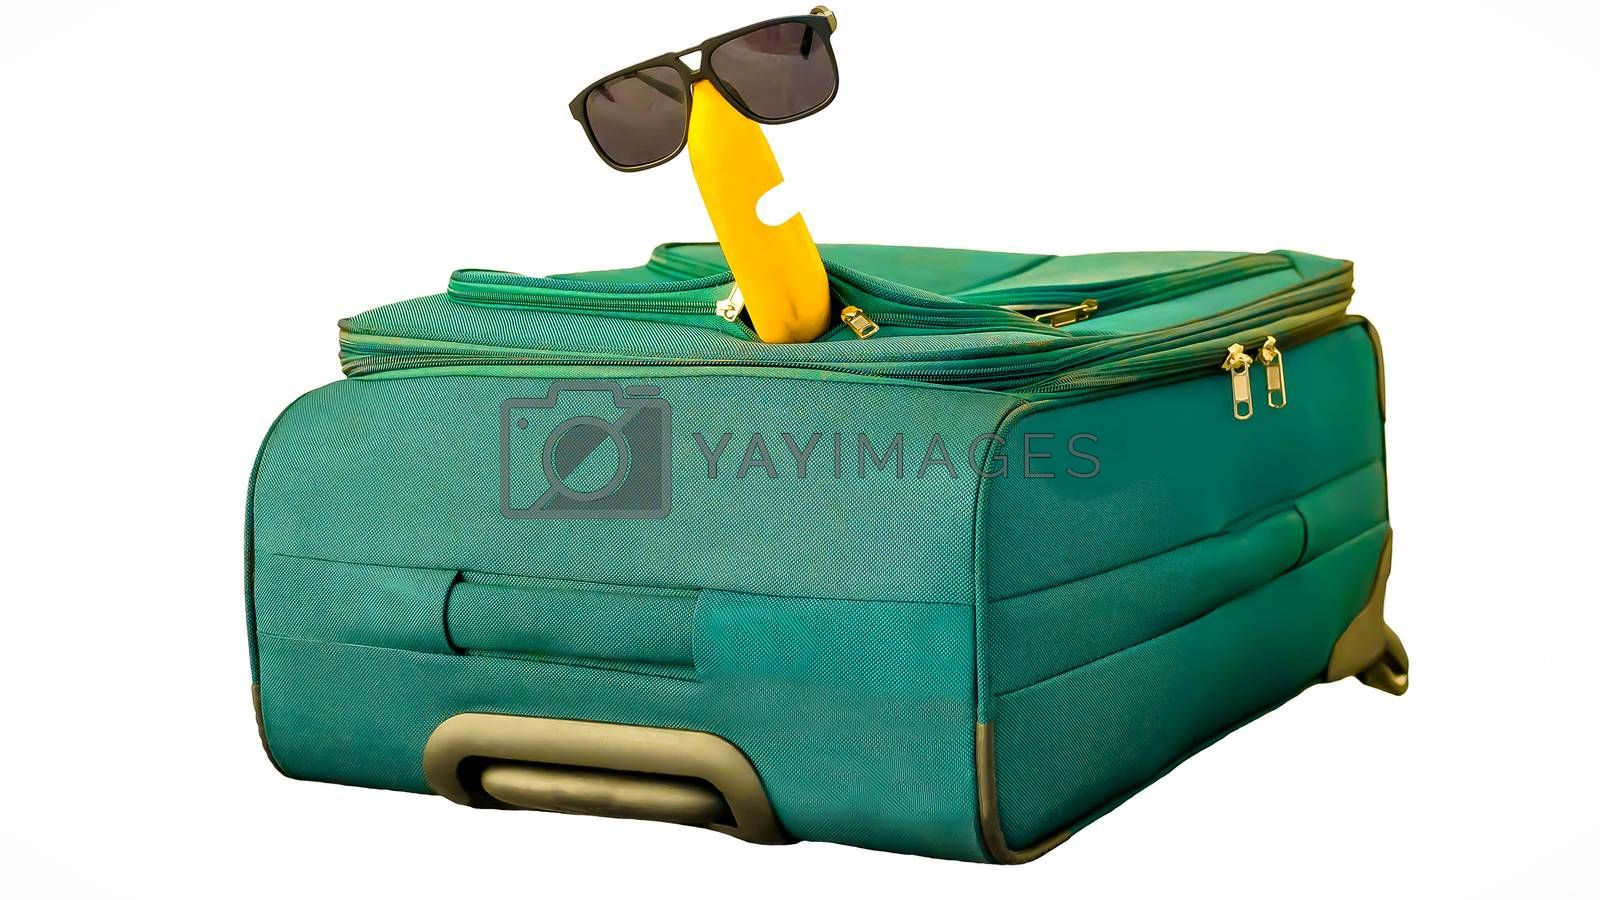 Royalty free image of Funny and cheerful banana in sunglasses with suitcase isolated on white background by Andriii_Klapkoo